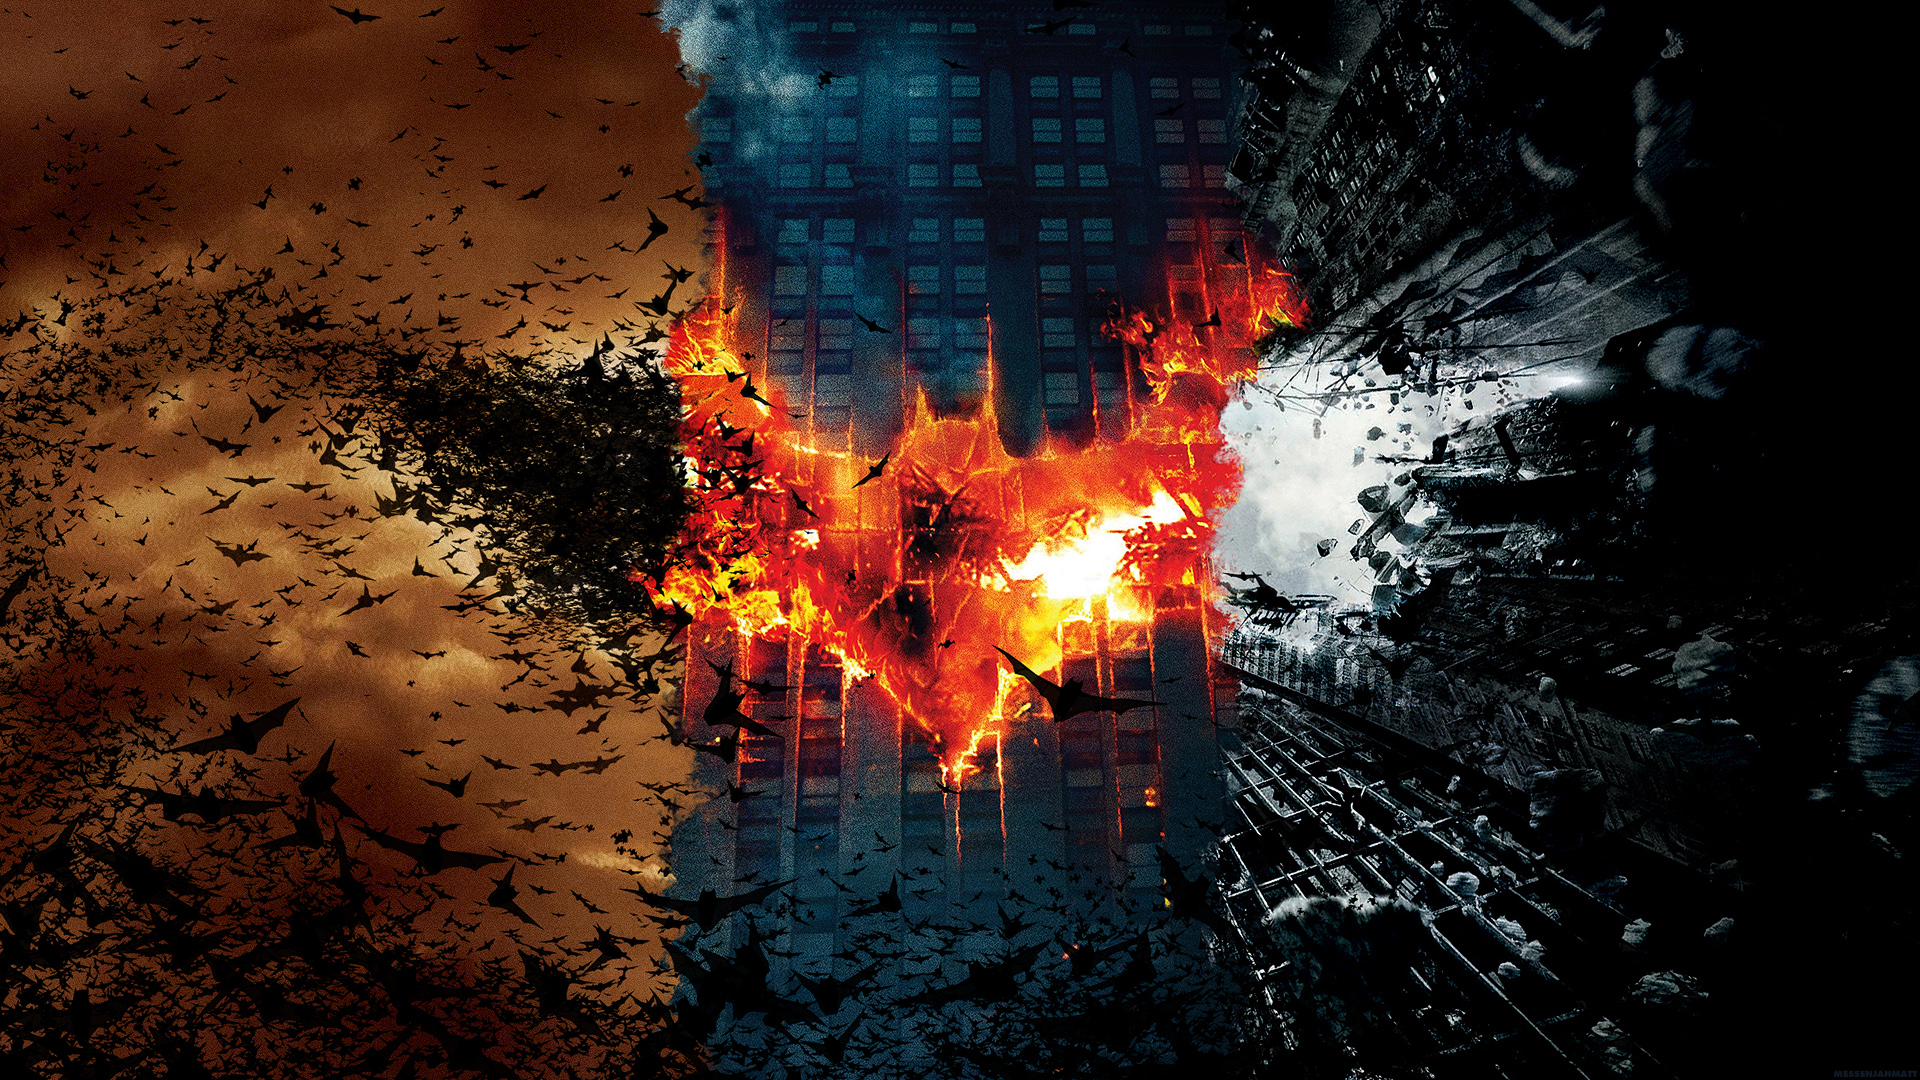 Dark Knight Rises HD Wallpapers and Desktop Backgrounds | Dark Knight ...